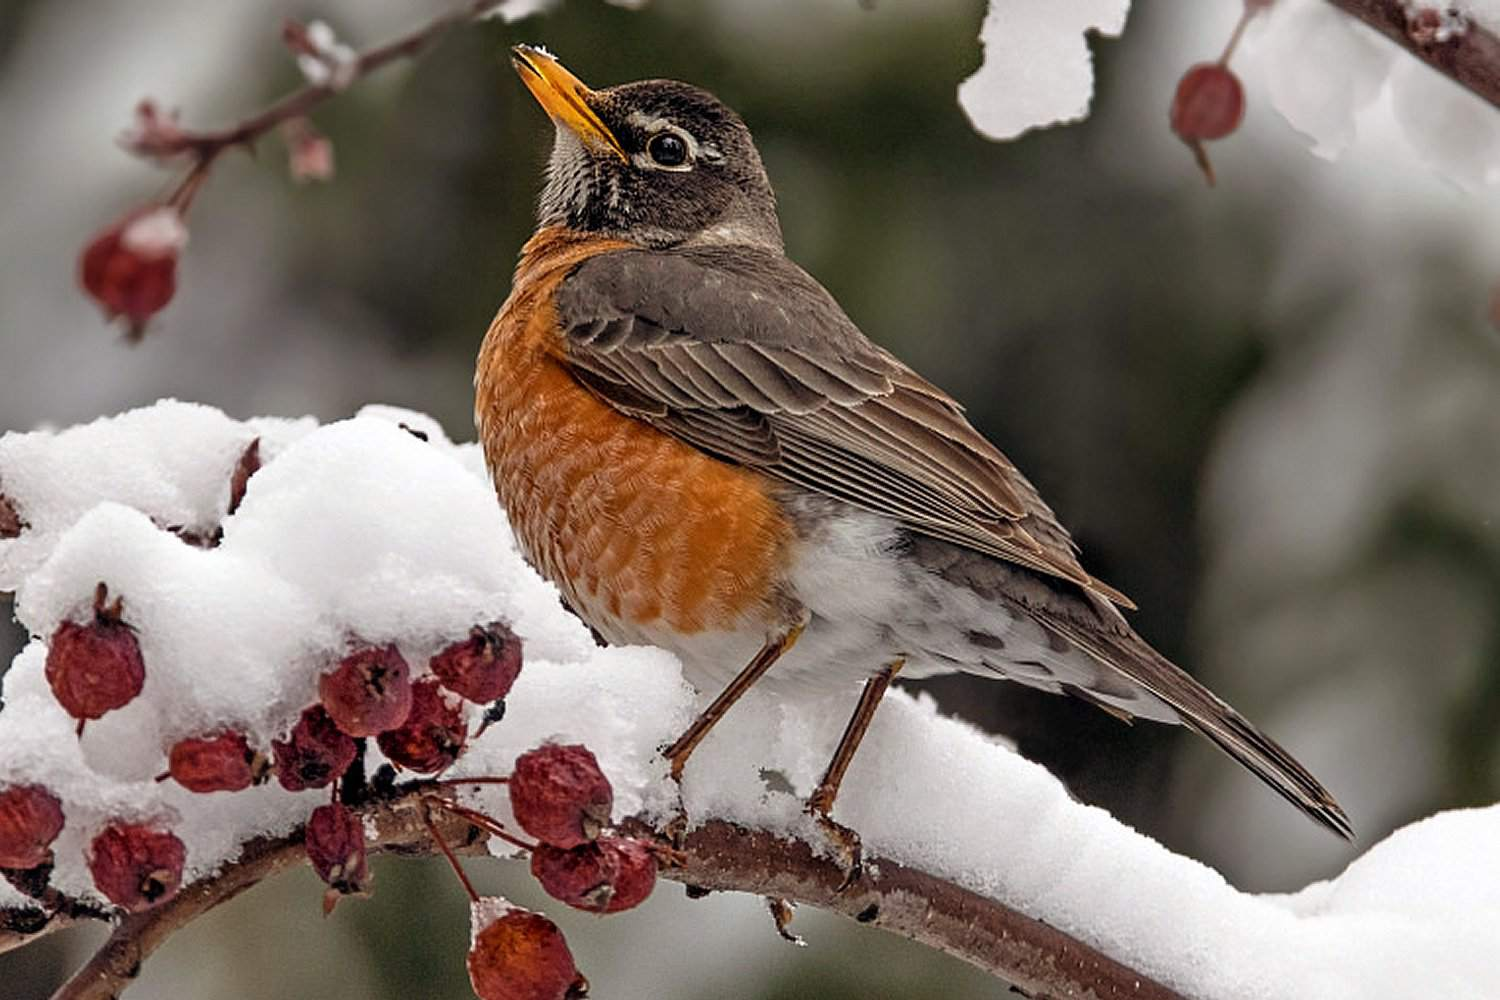 American Robin, state bird of Connecticut, on a snowy branch.